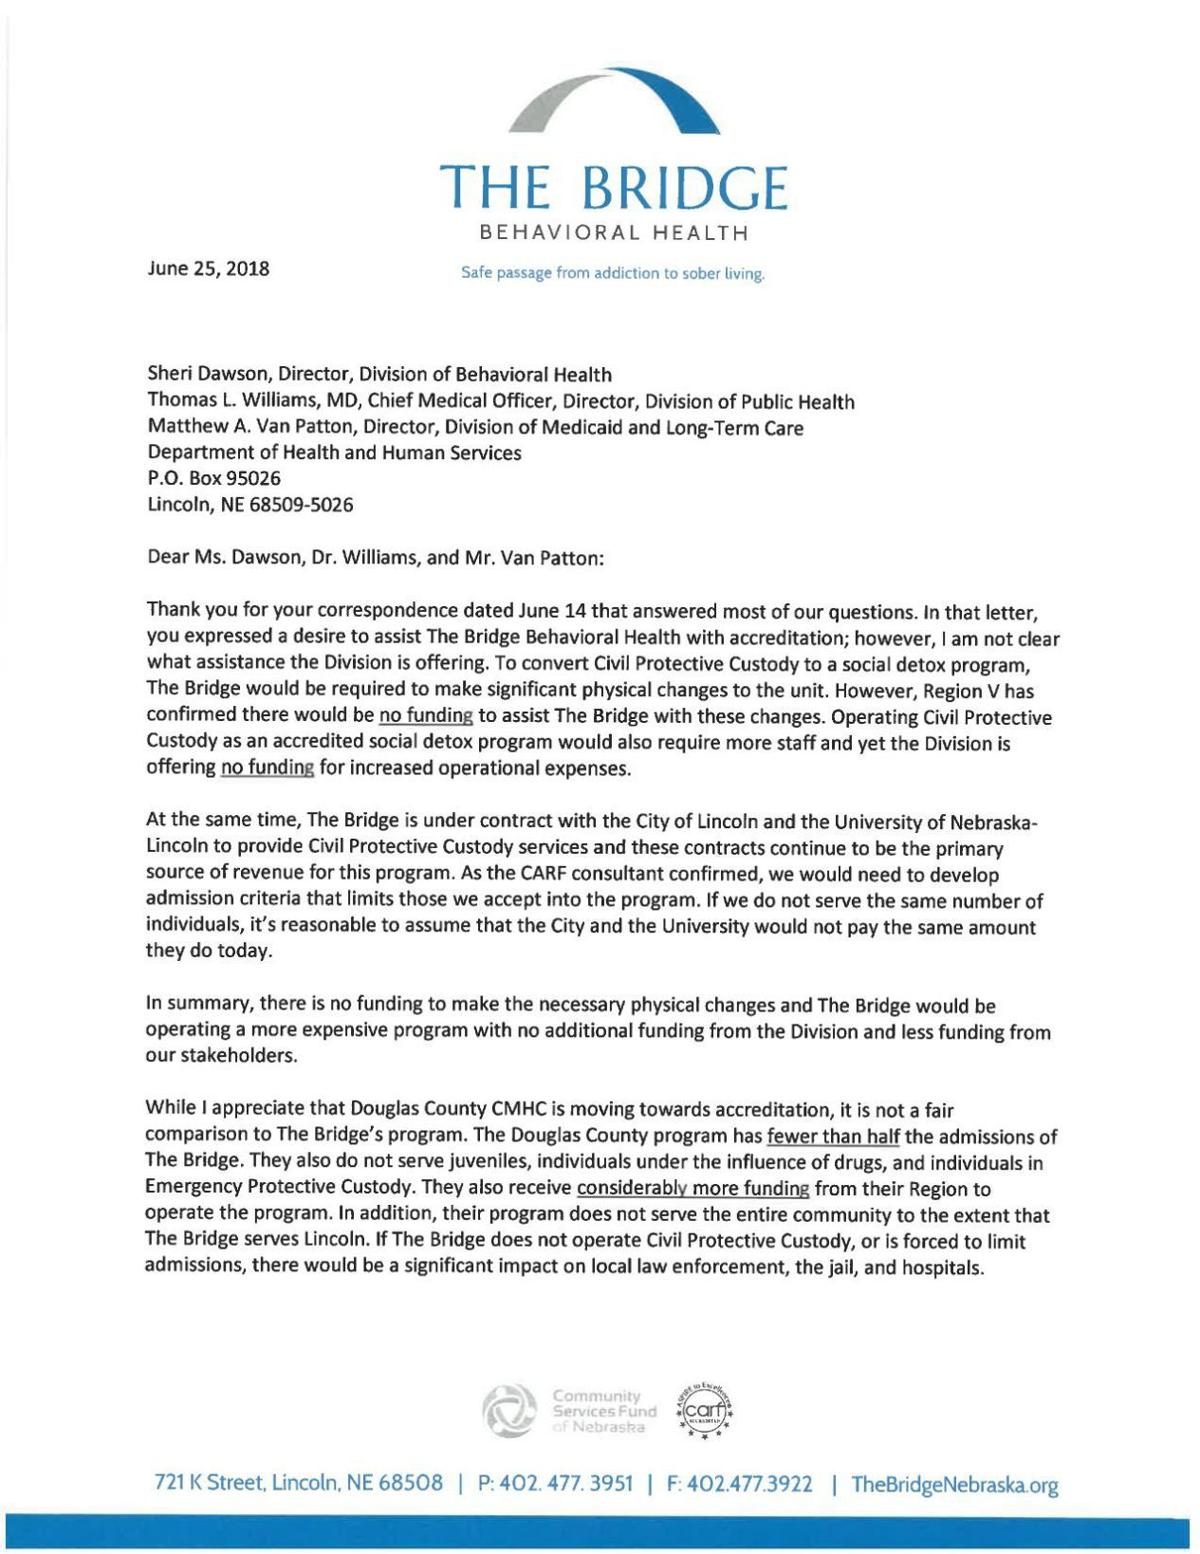 The Bridge Behavioral Health letter to DHHS, June 25, 2018